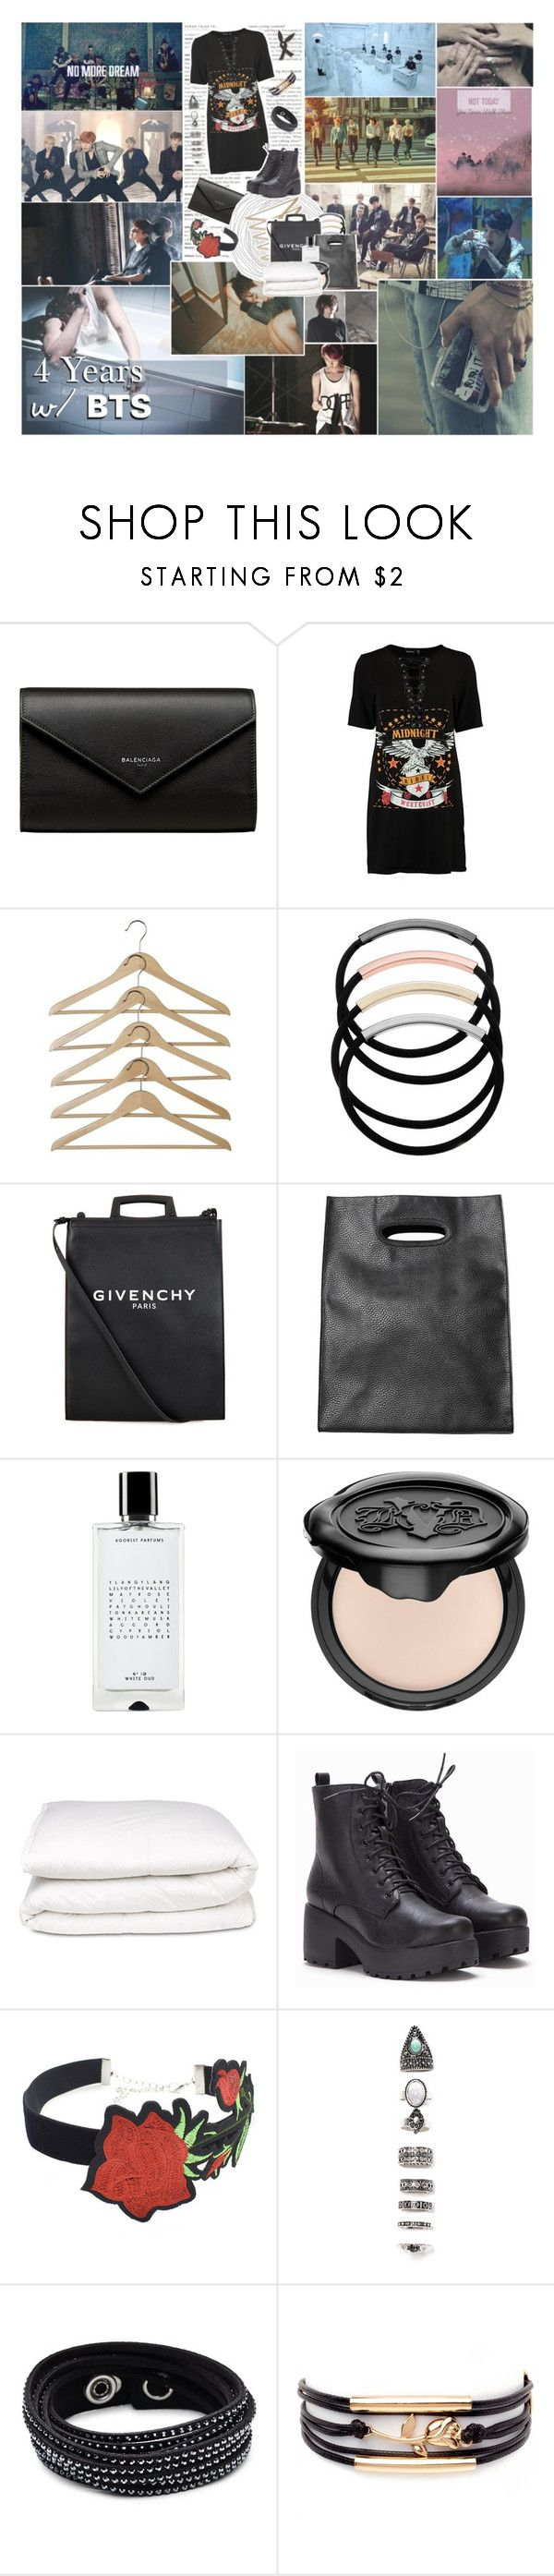 """4 Years W/ BTS :: Different Eras"" by k-pop-things-and-such ❤ liked on Polyvore featuring Balenciaga, Boohoo, L. Erickson, Givenchy, Monki, Agonist, Kat Von D, Selfridges, WithChic and Nasty Gal"